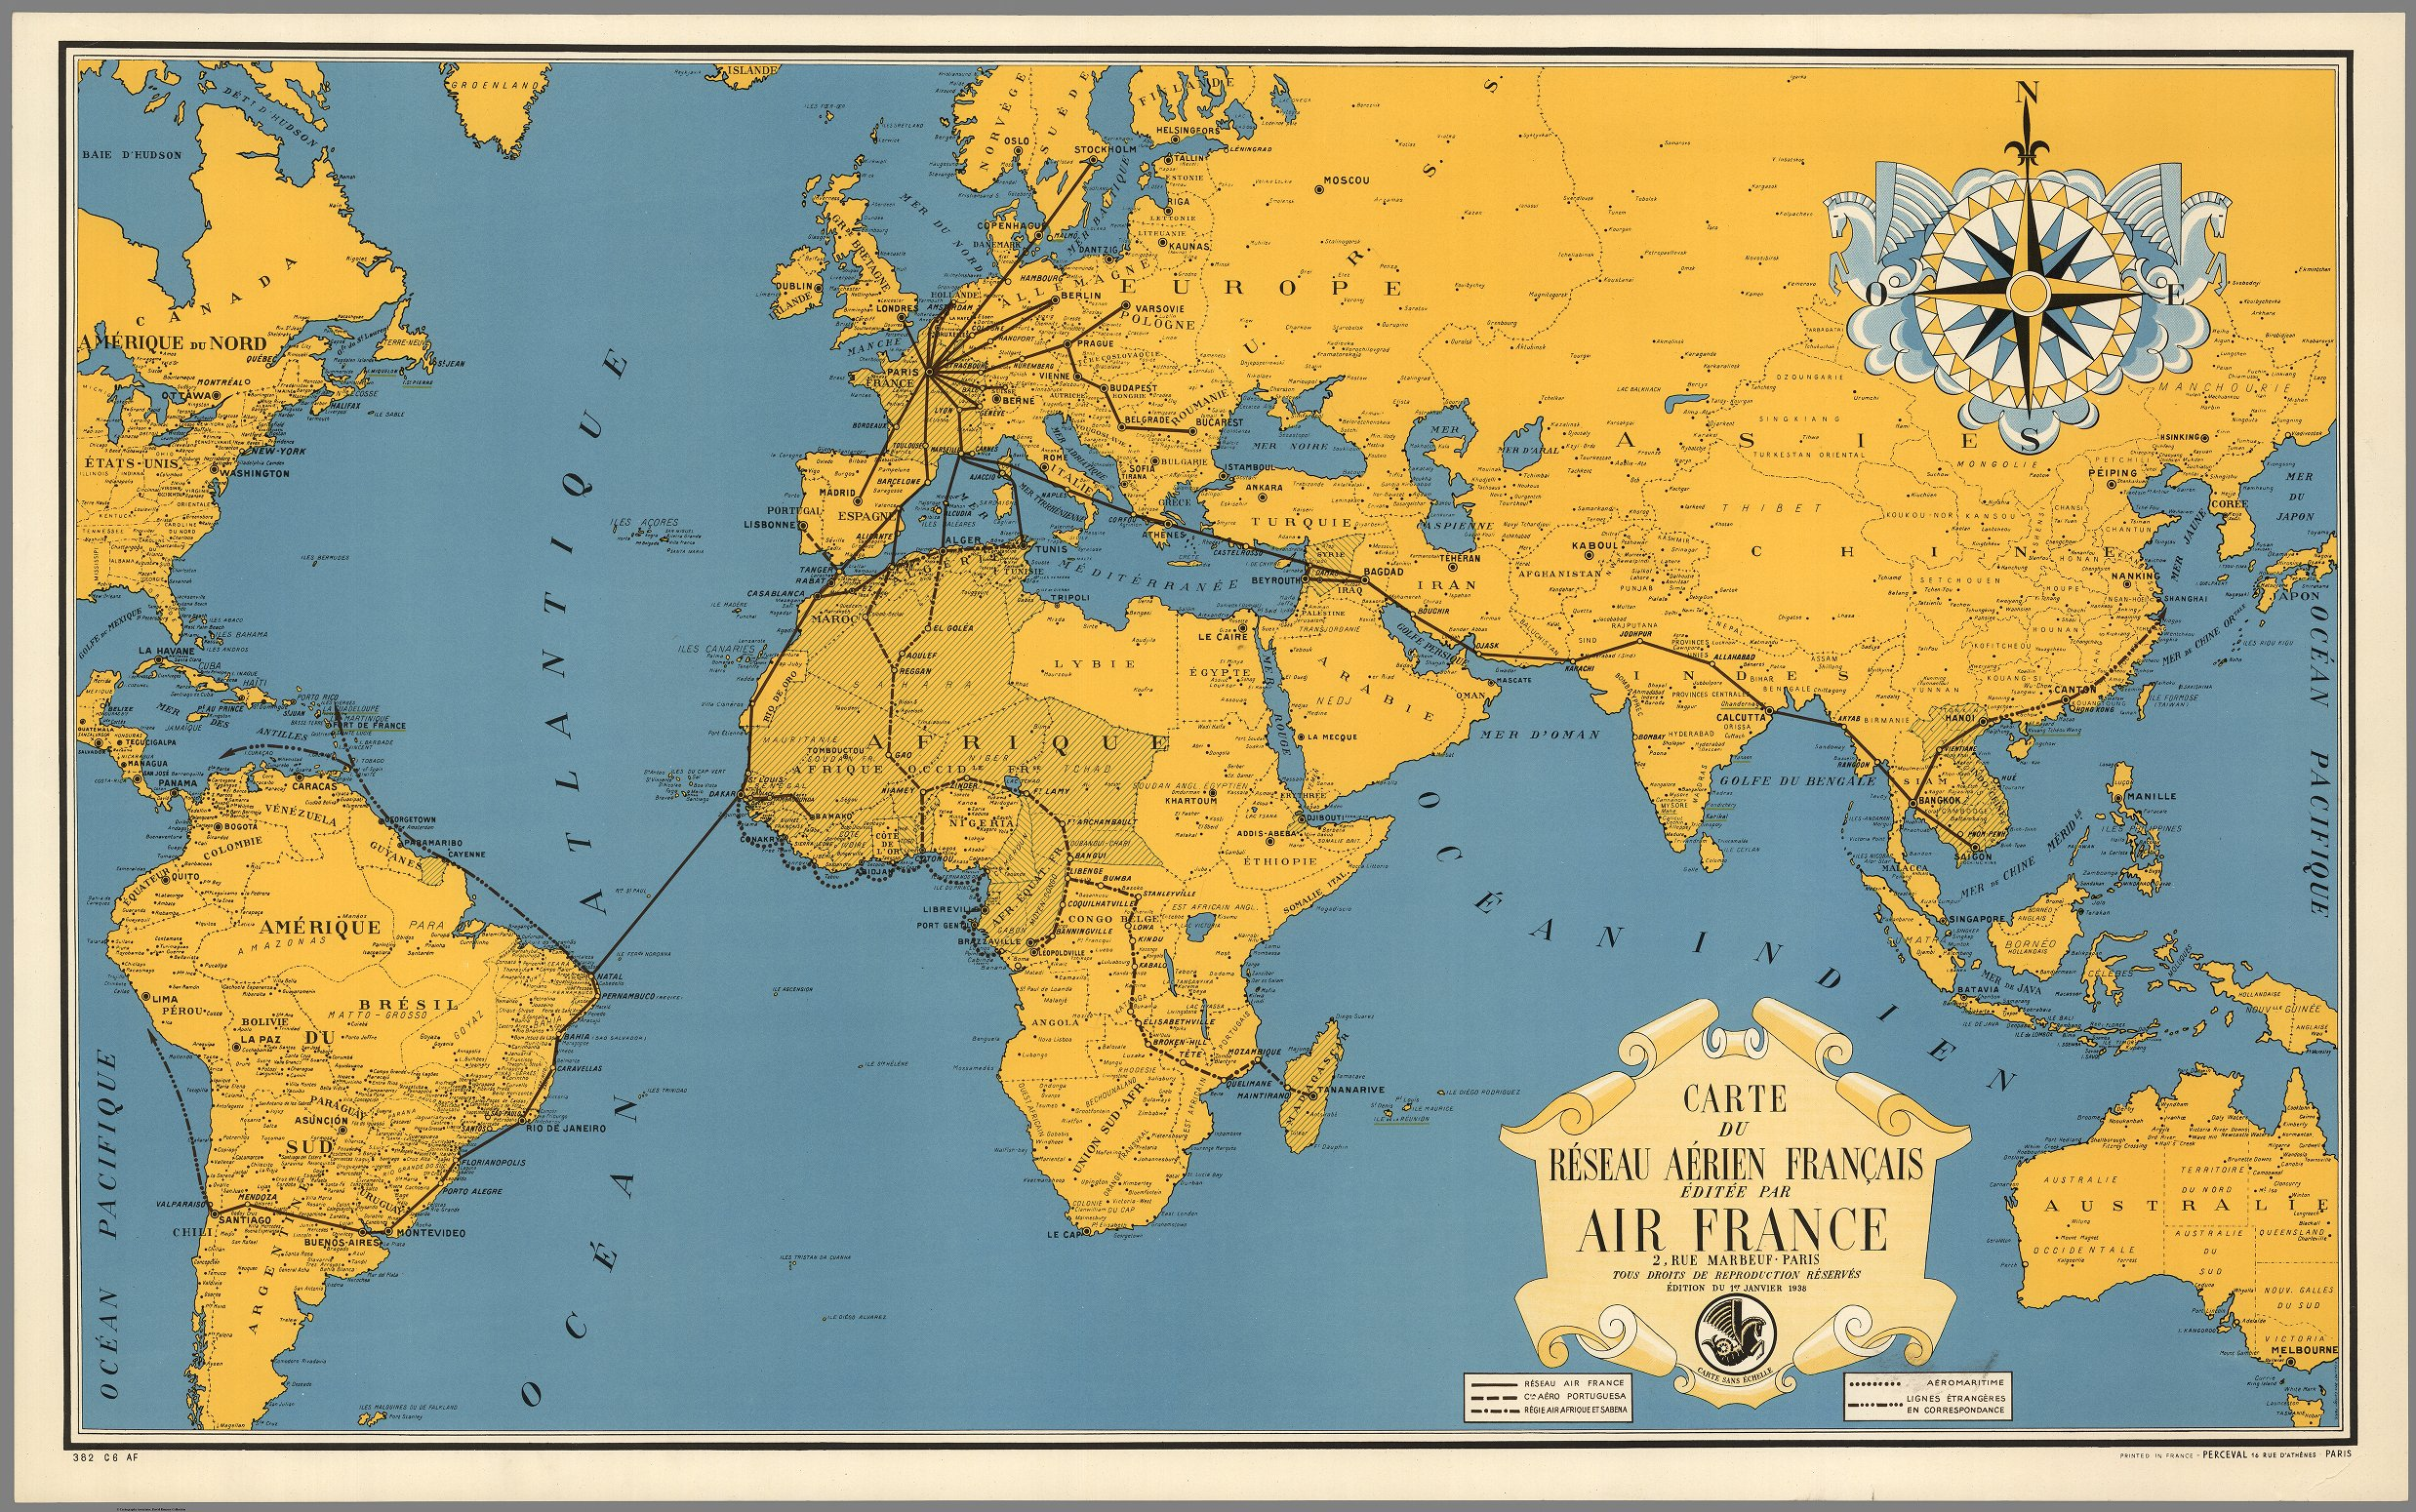 Remodelaholic Free Vintage Map Printable Images - Map of egypt hd